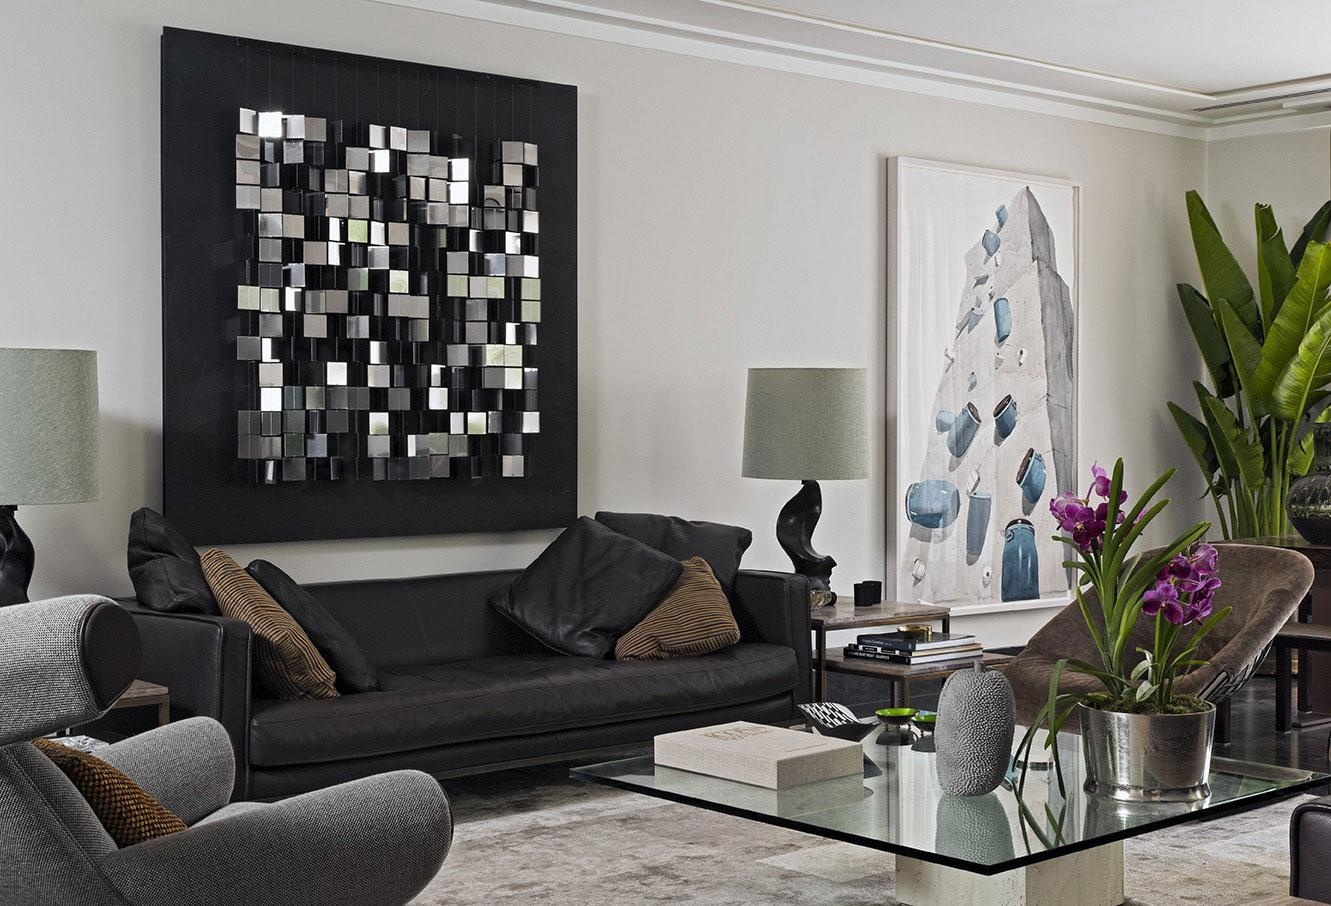 Ideas Of Large Wall Art For Living Room | Doherty Living Room For Wall Art For Living Room (Image 8 of 20)